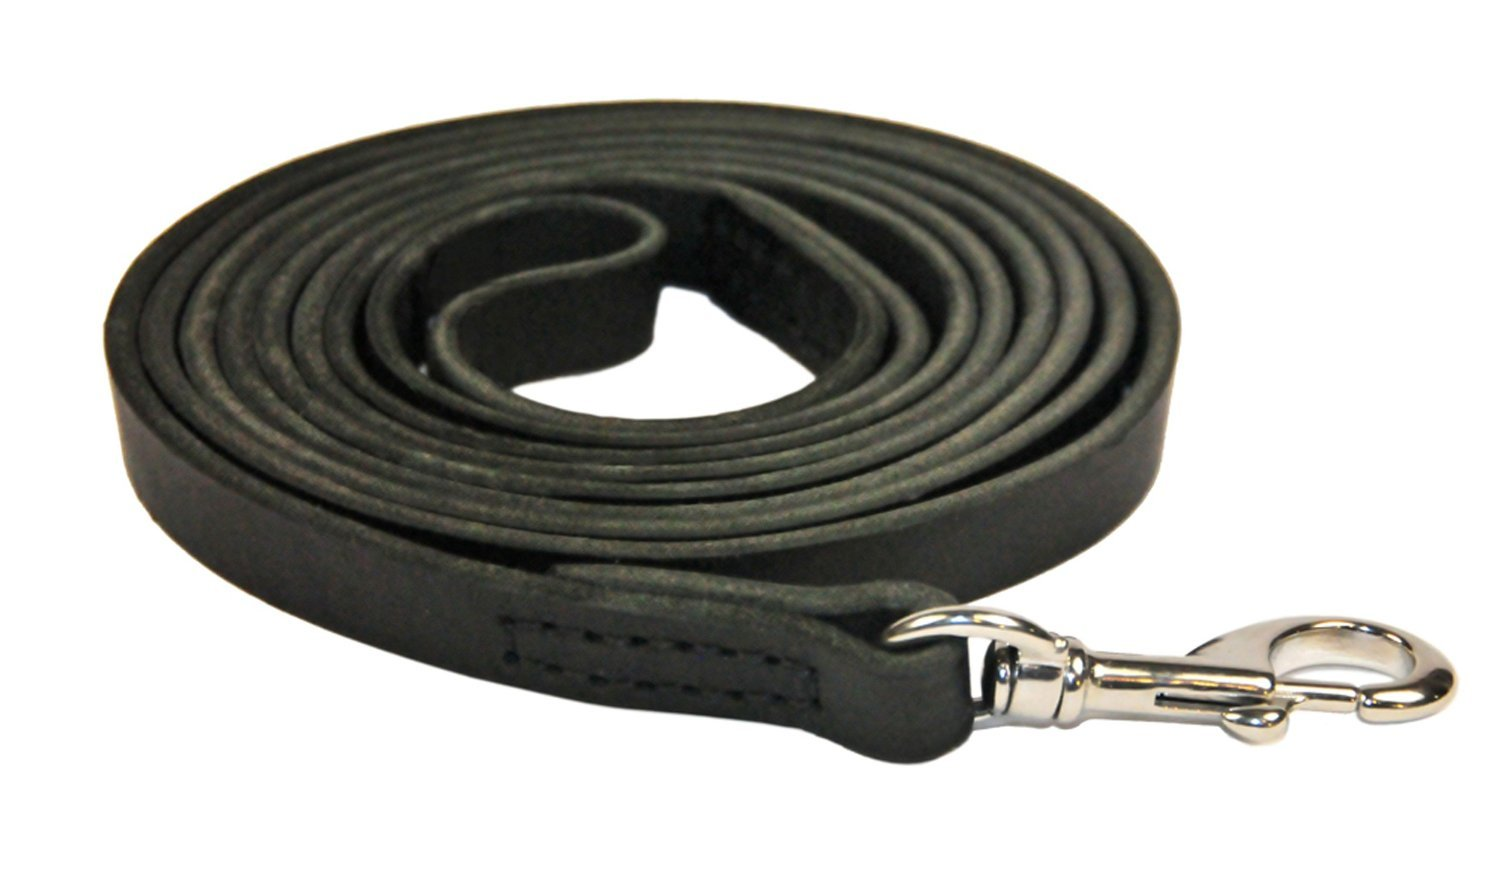 Dean and Tyler Stitched Track Dog Leash, Black 45-Feet by 3/8-Inch Width with Stainless Steel Hardware